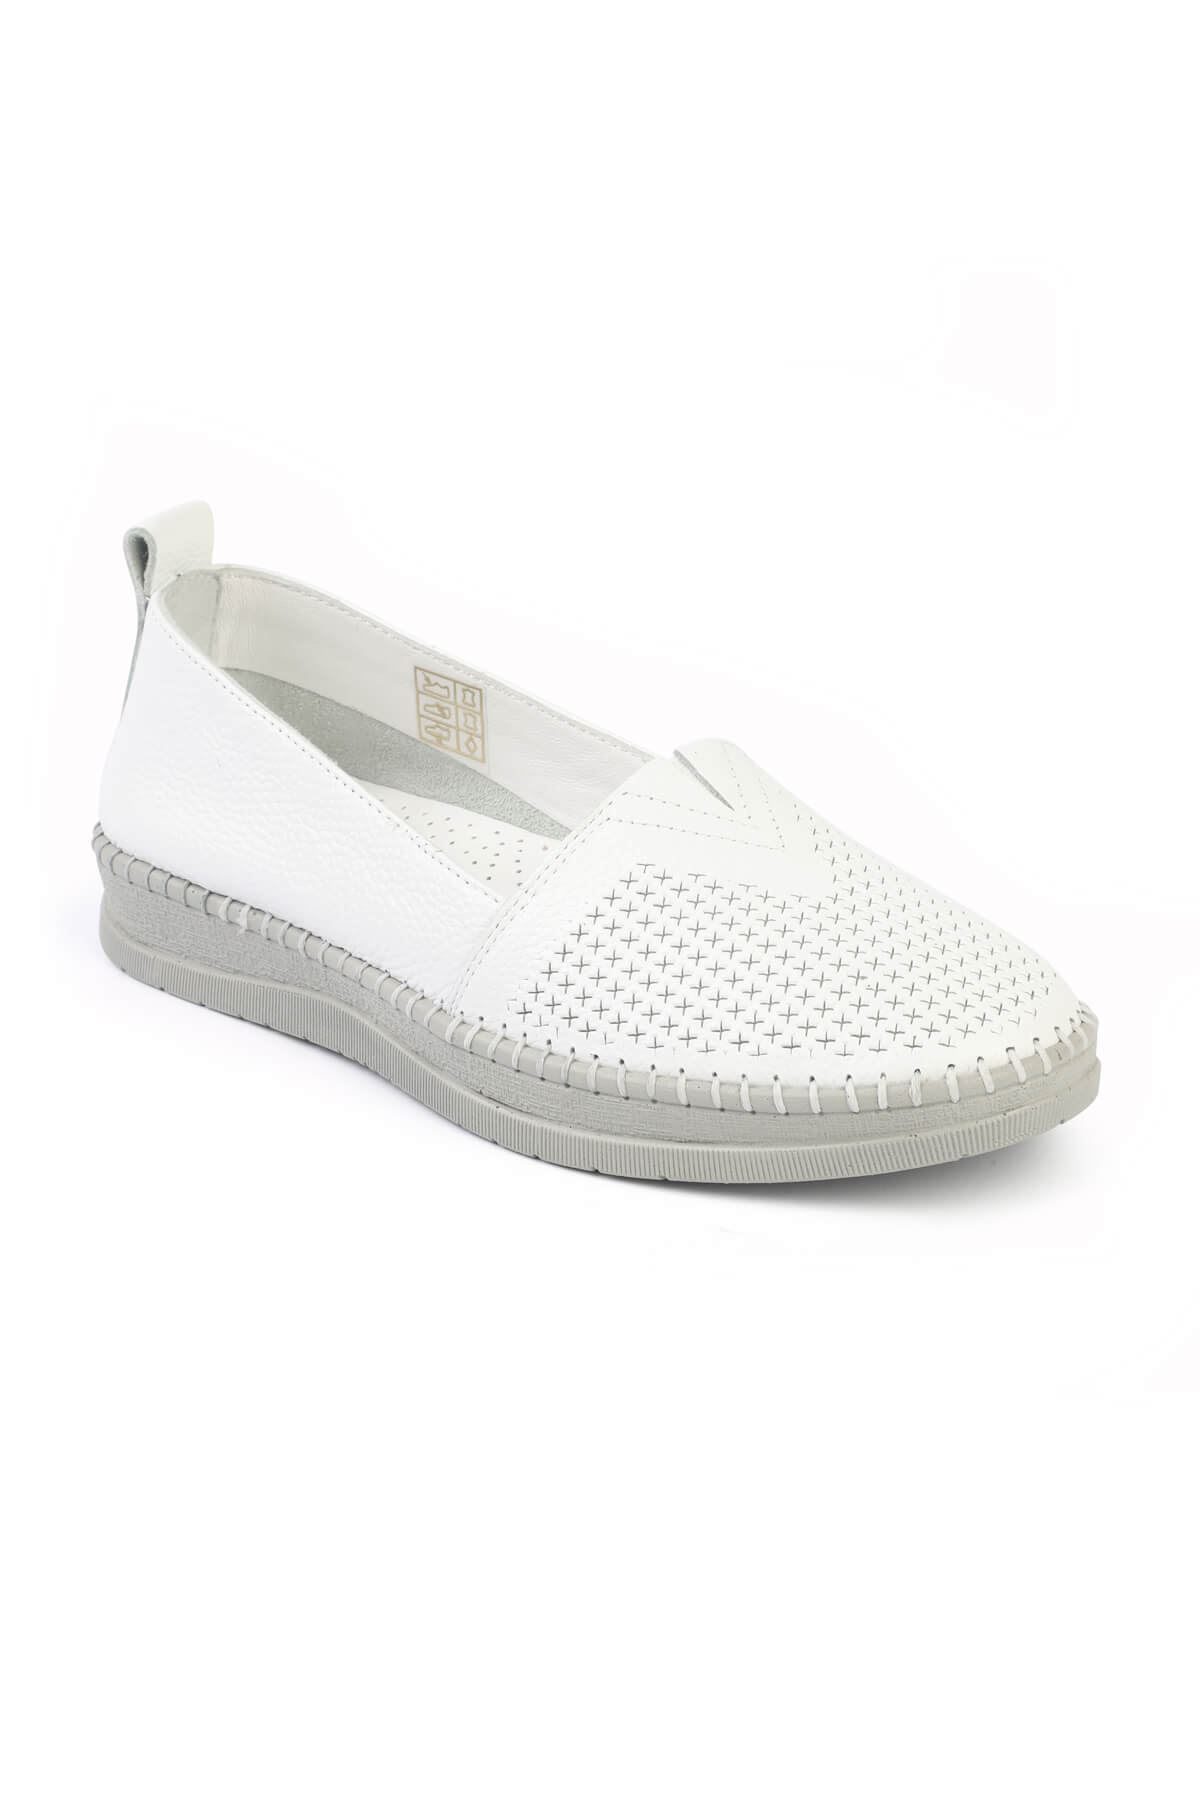 Libero FMS240 White Espadrille Shoes